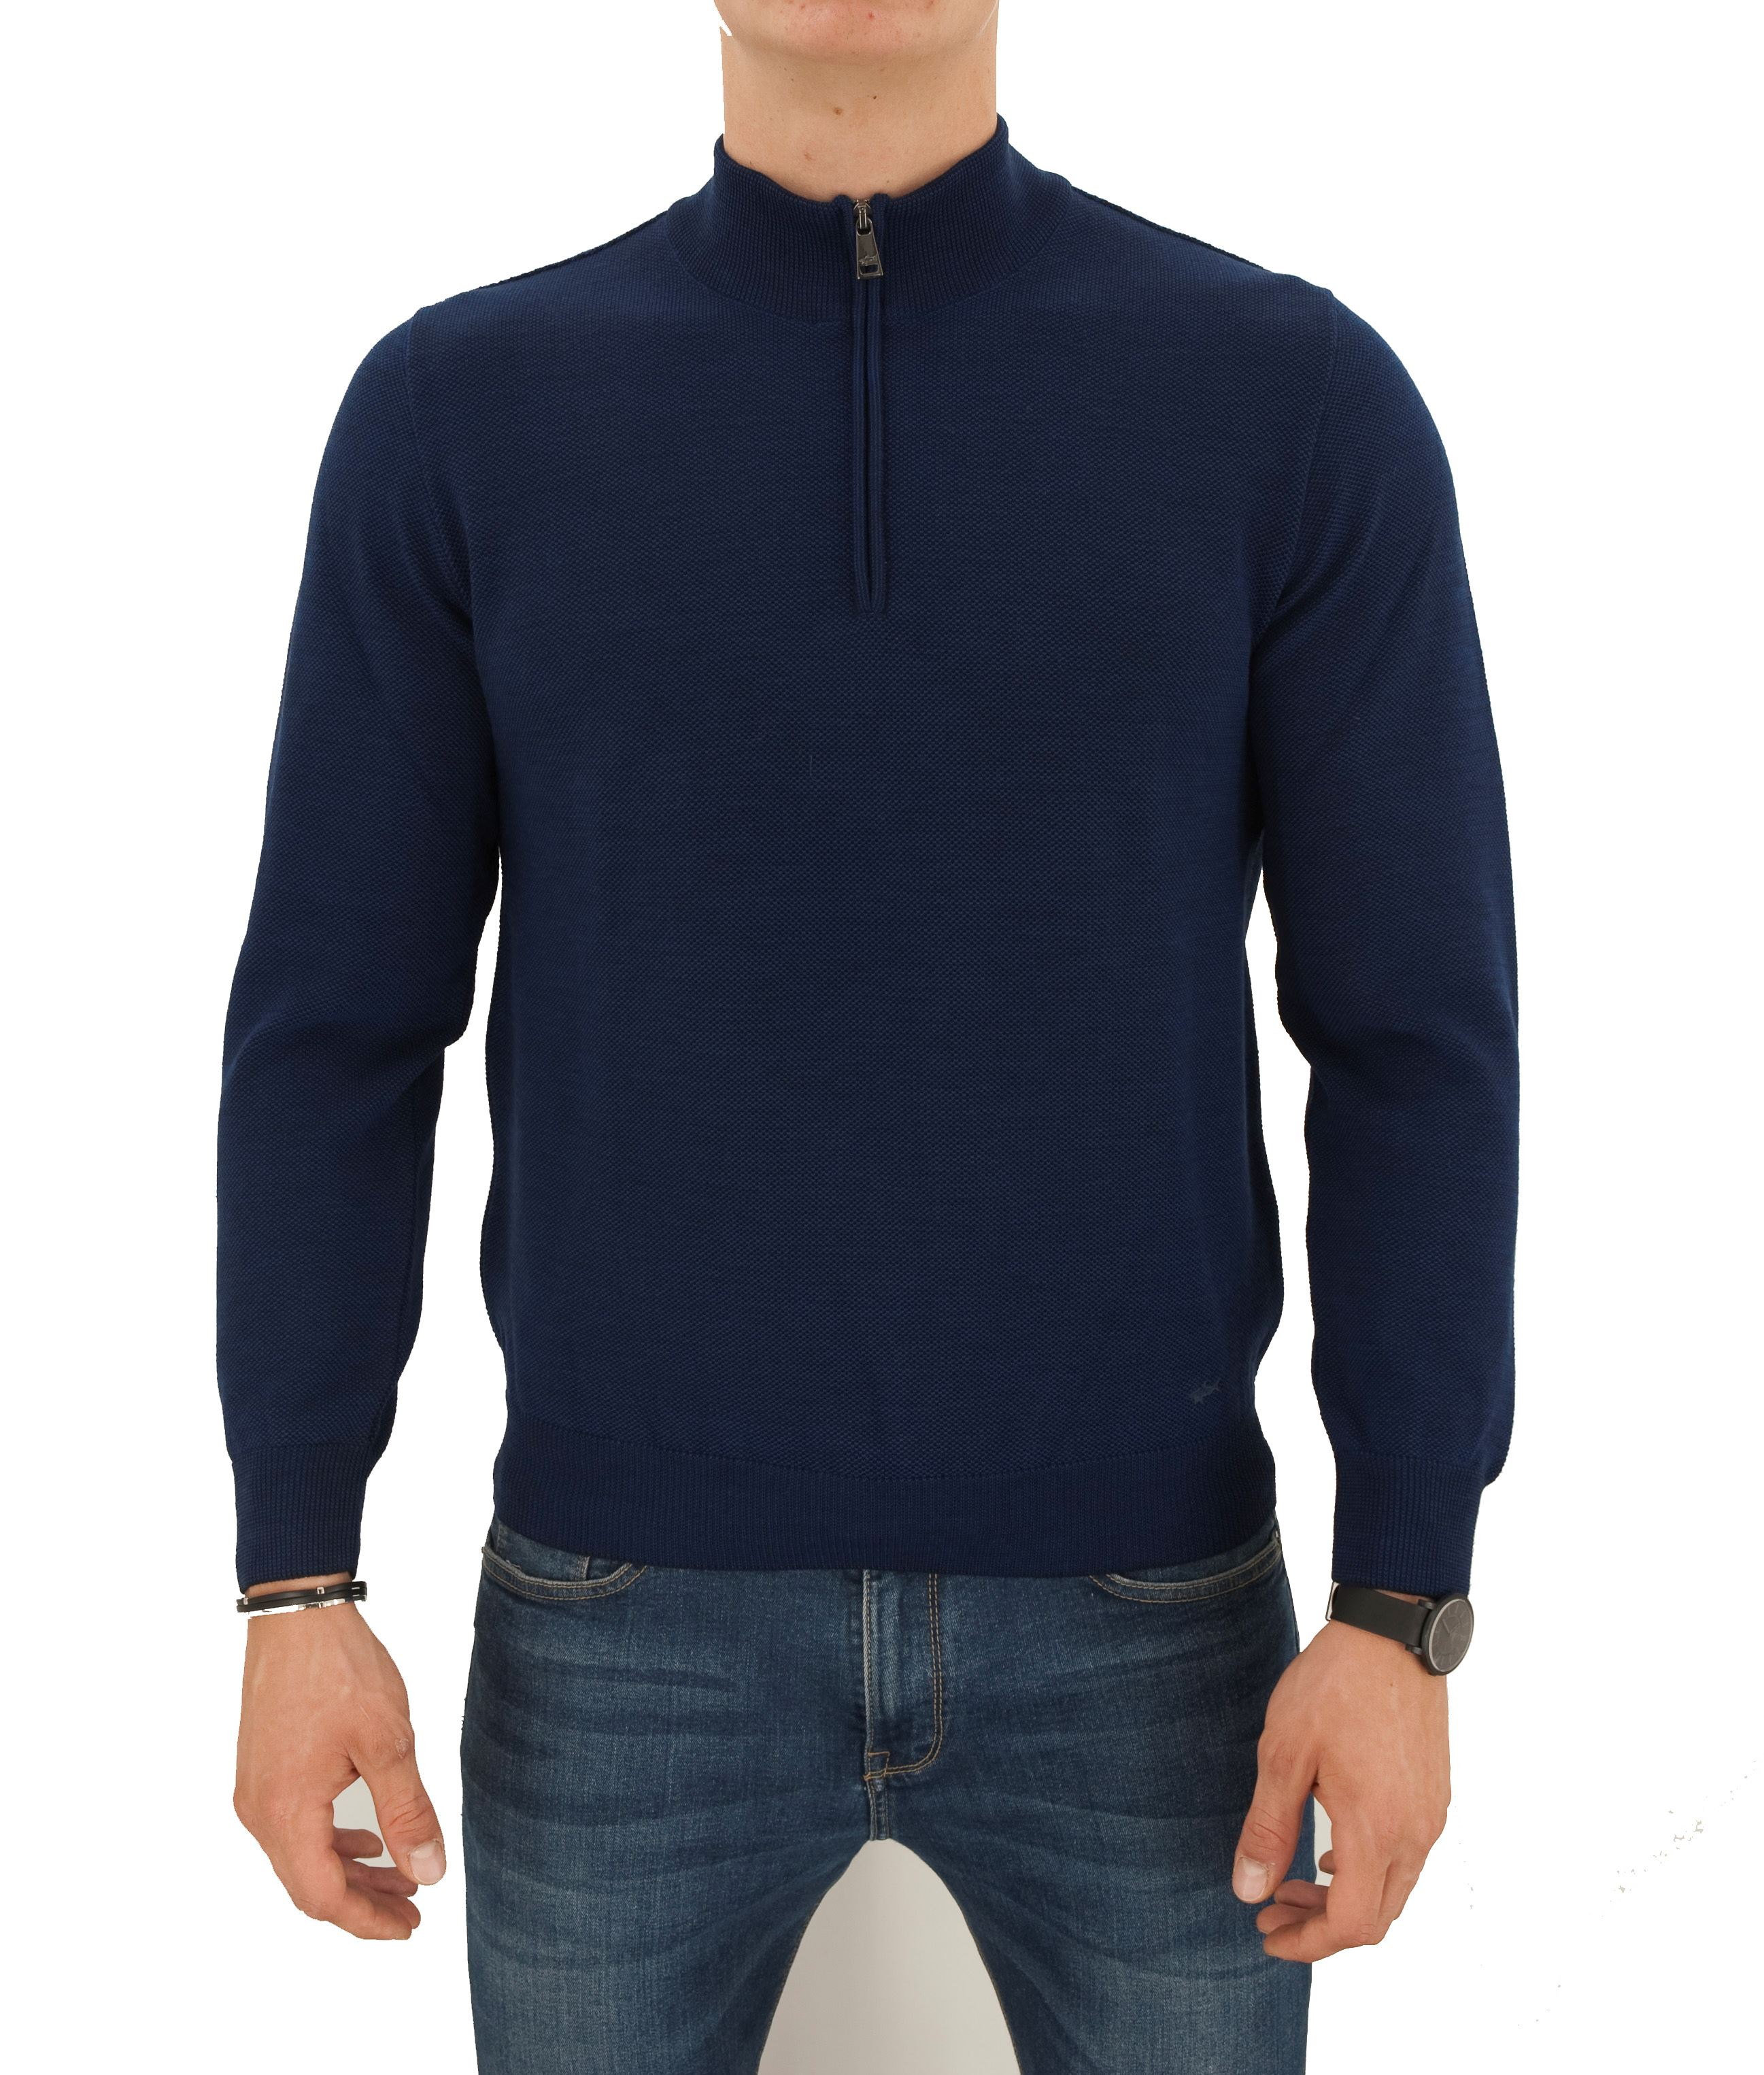 Picture of MOCK TURTLENECK WITH ZIPPER